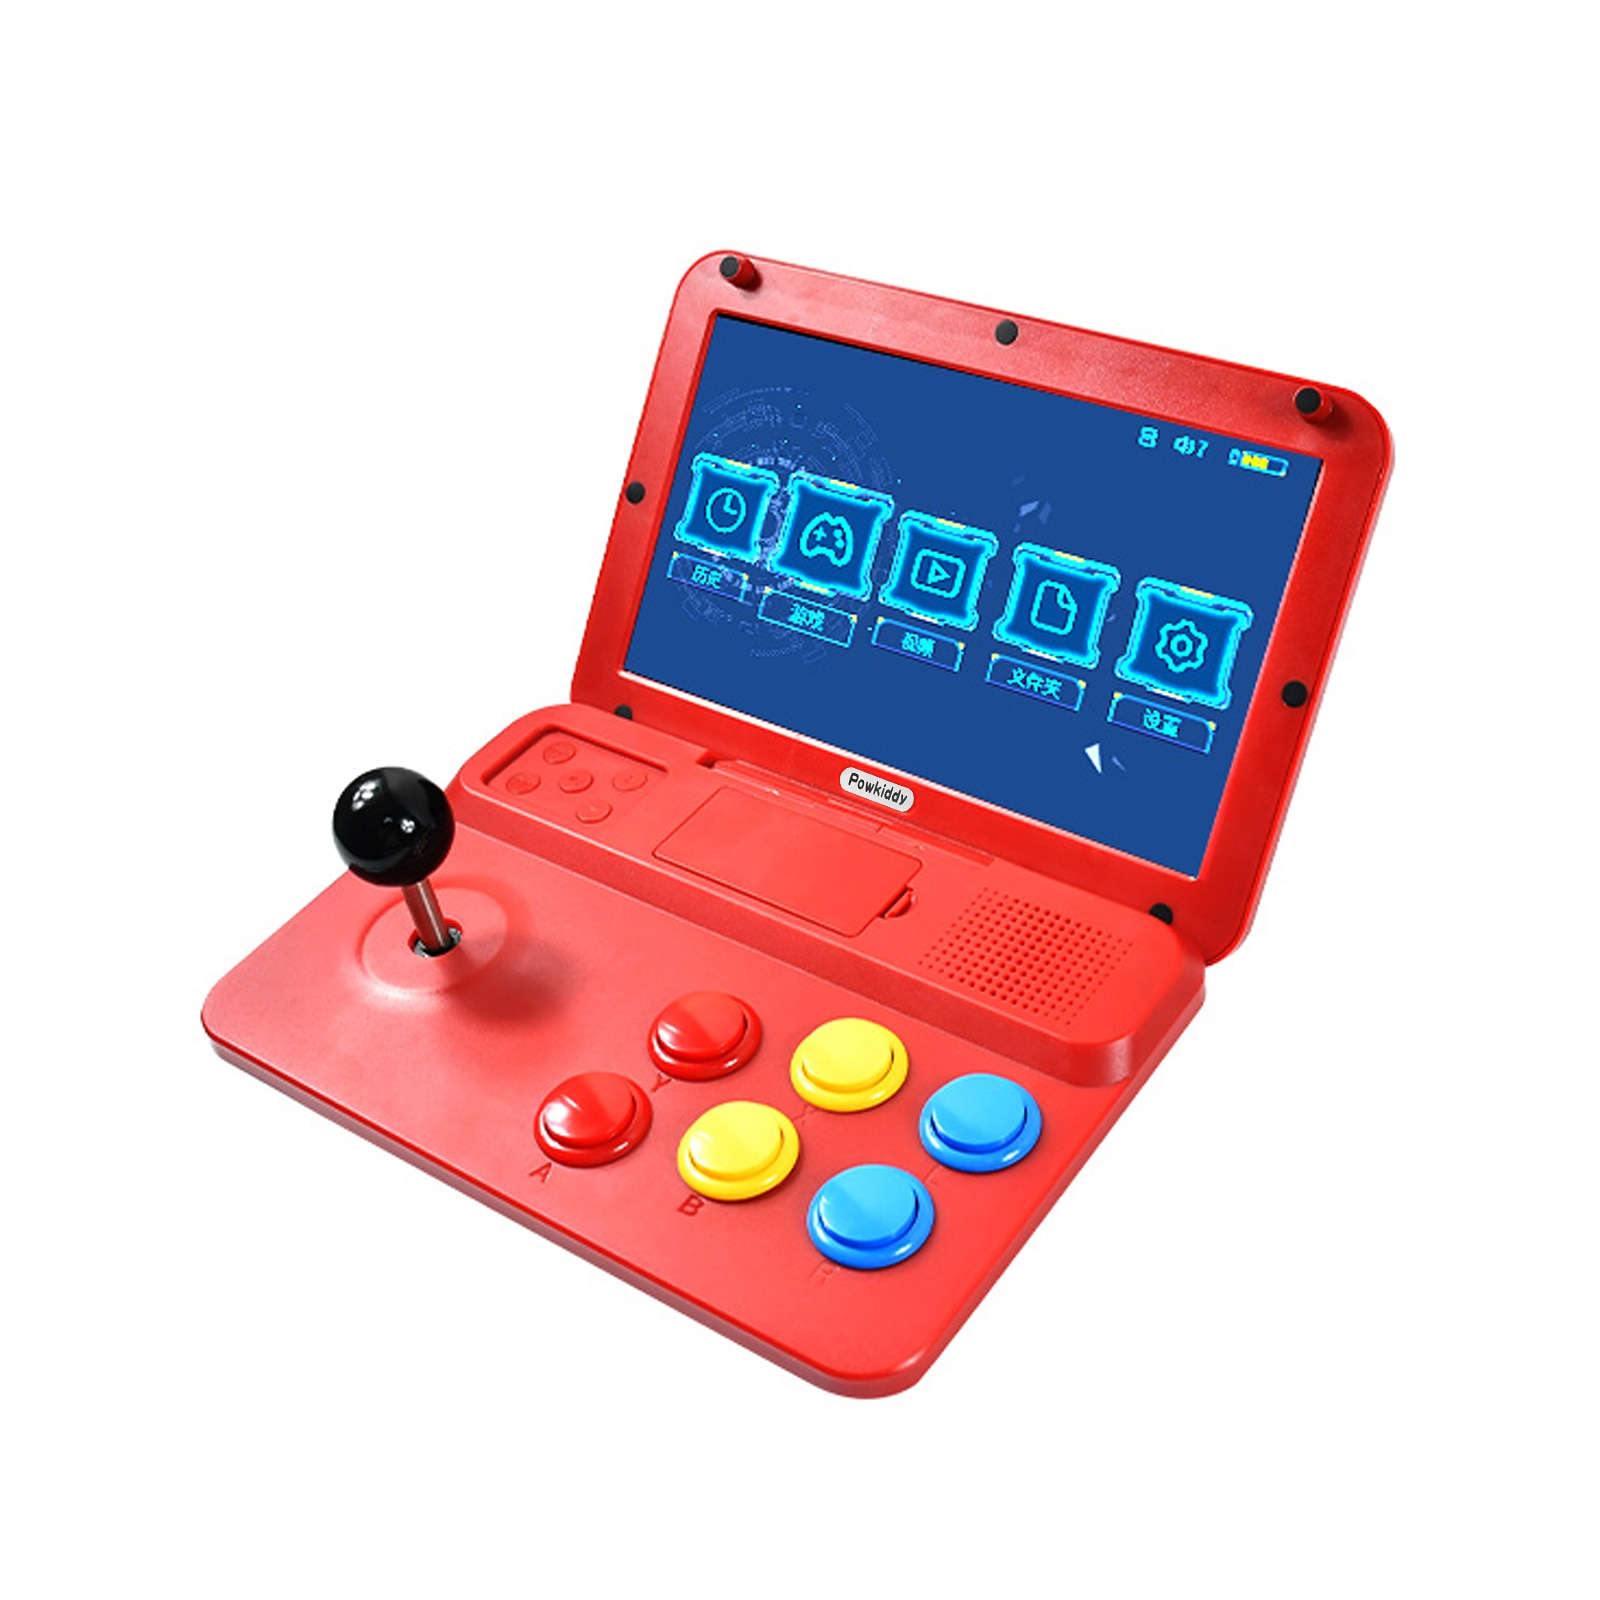 NEW POWKIDDY A13 10 Inch Joystick Arcade A7 Architecture Quad-Core CPU Simulator Video Game Console New Game Children's Gift